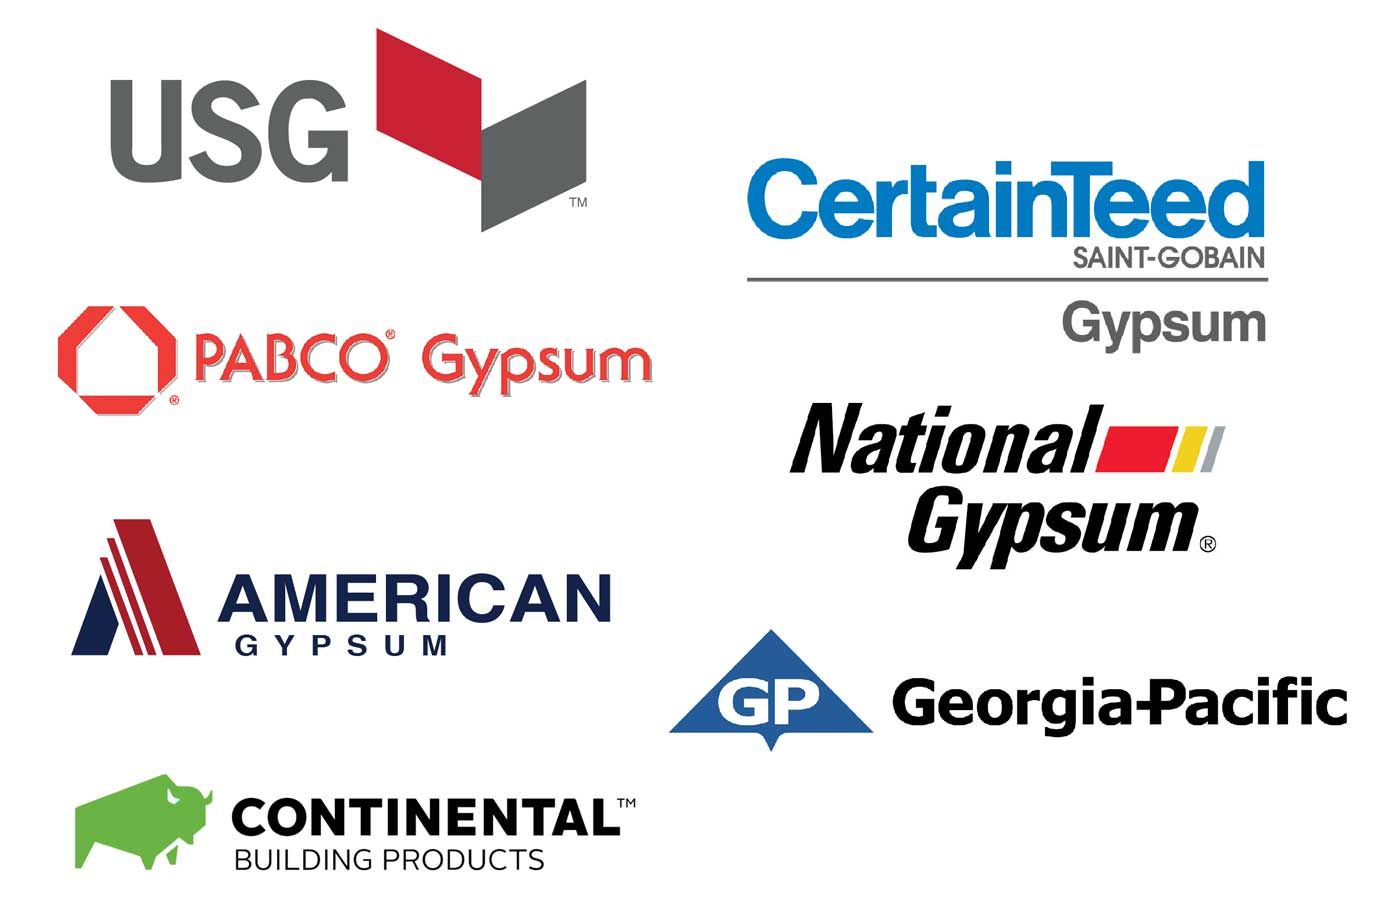 USG, PABCO Gypsum, American Gypsum, Continental Building Products, CertainTeed Gypsum, National Gypsum, Georgia-Pacific